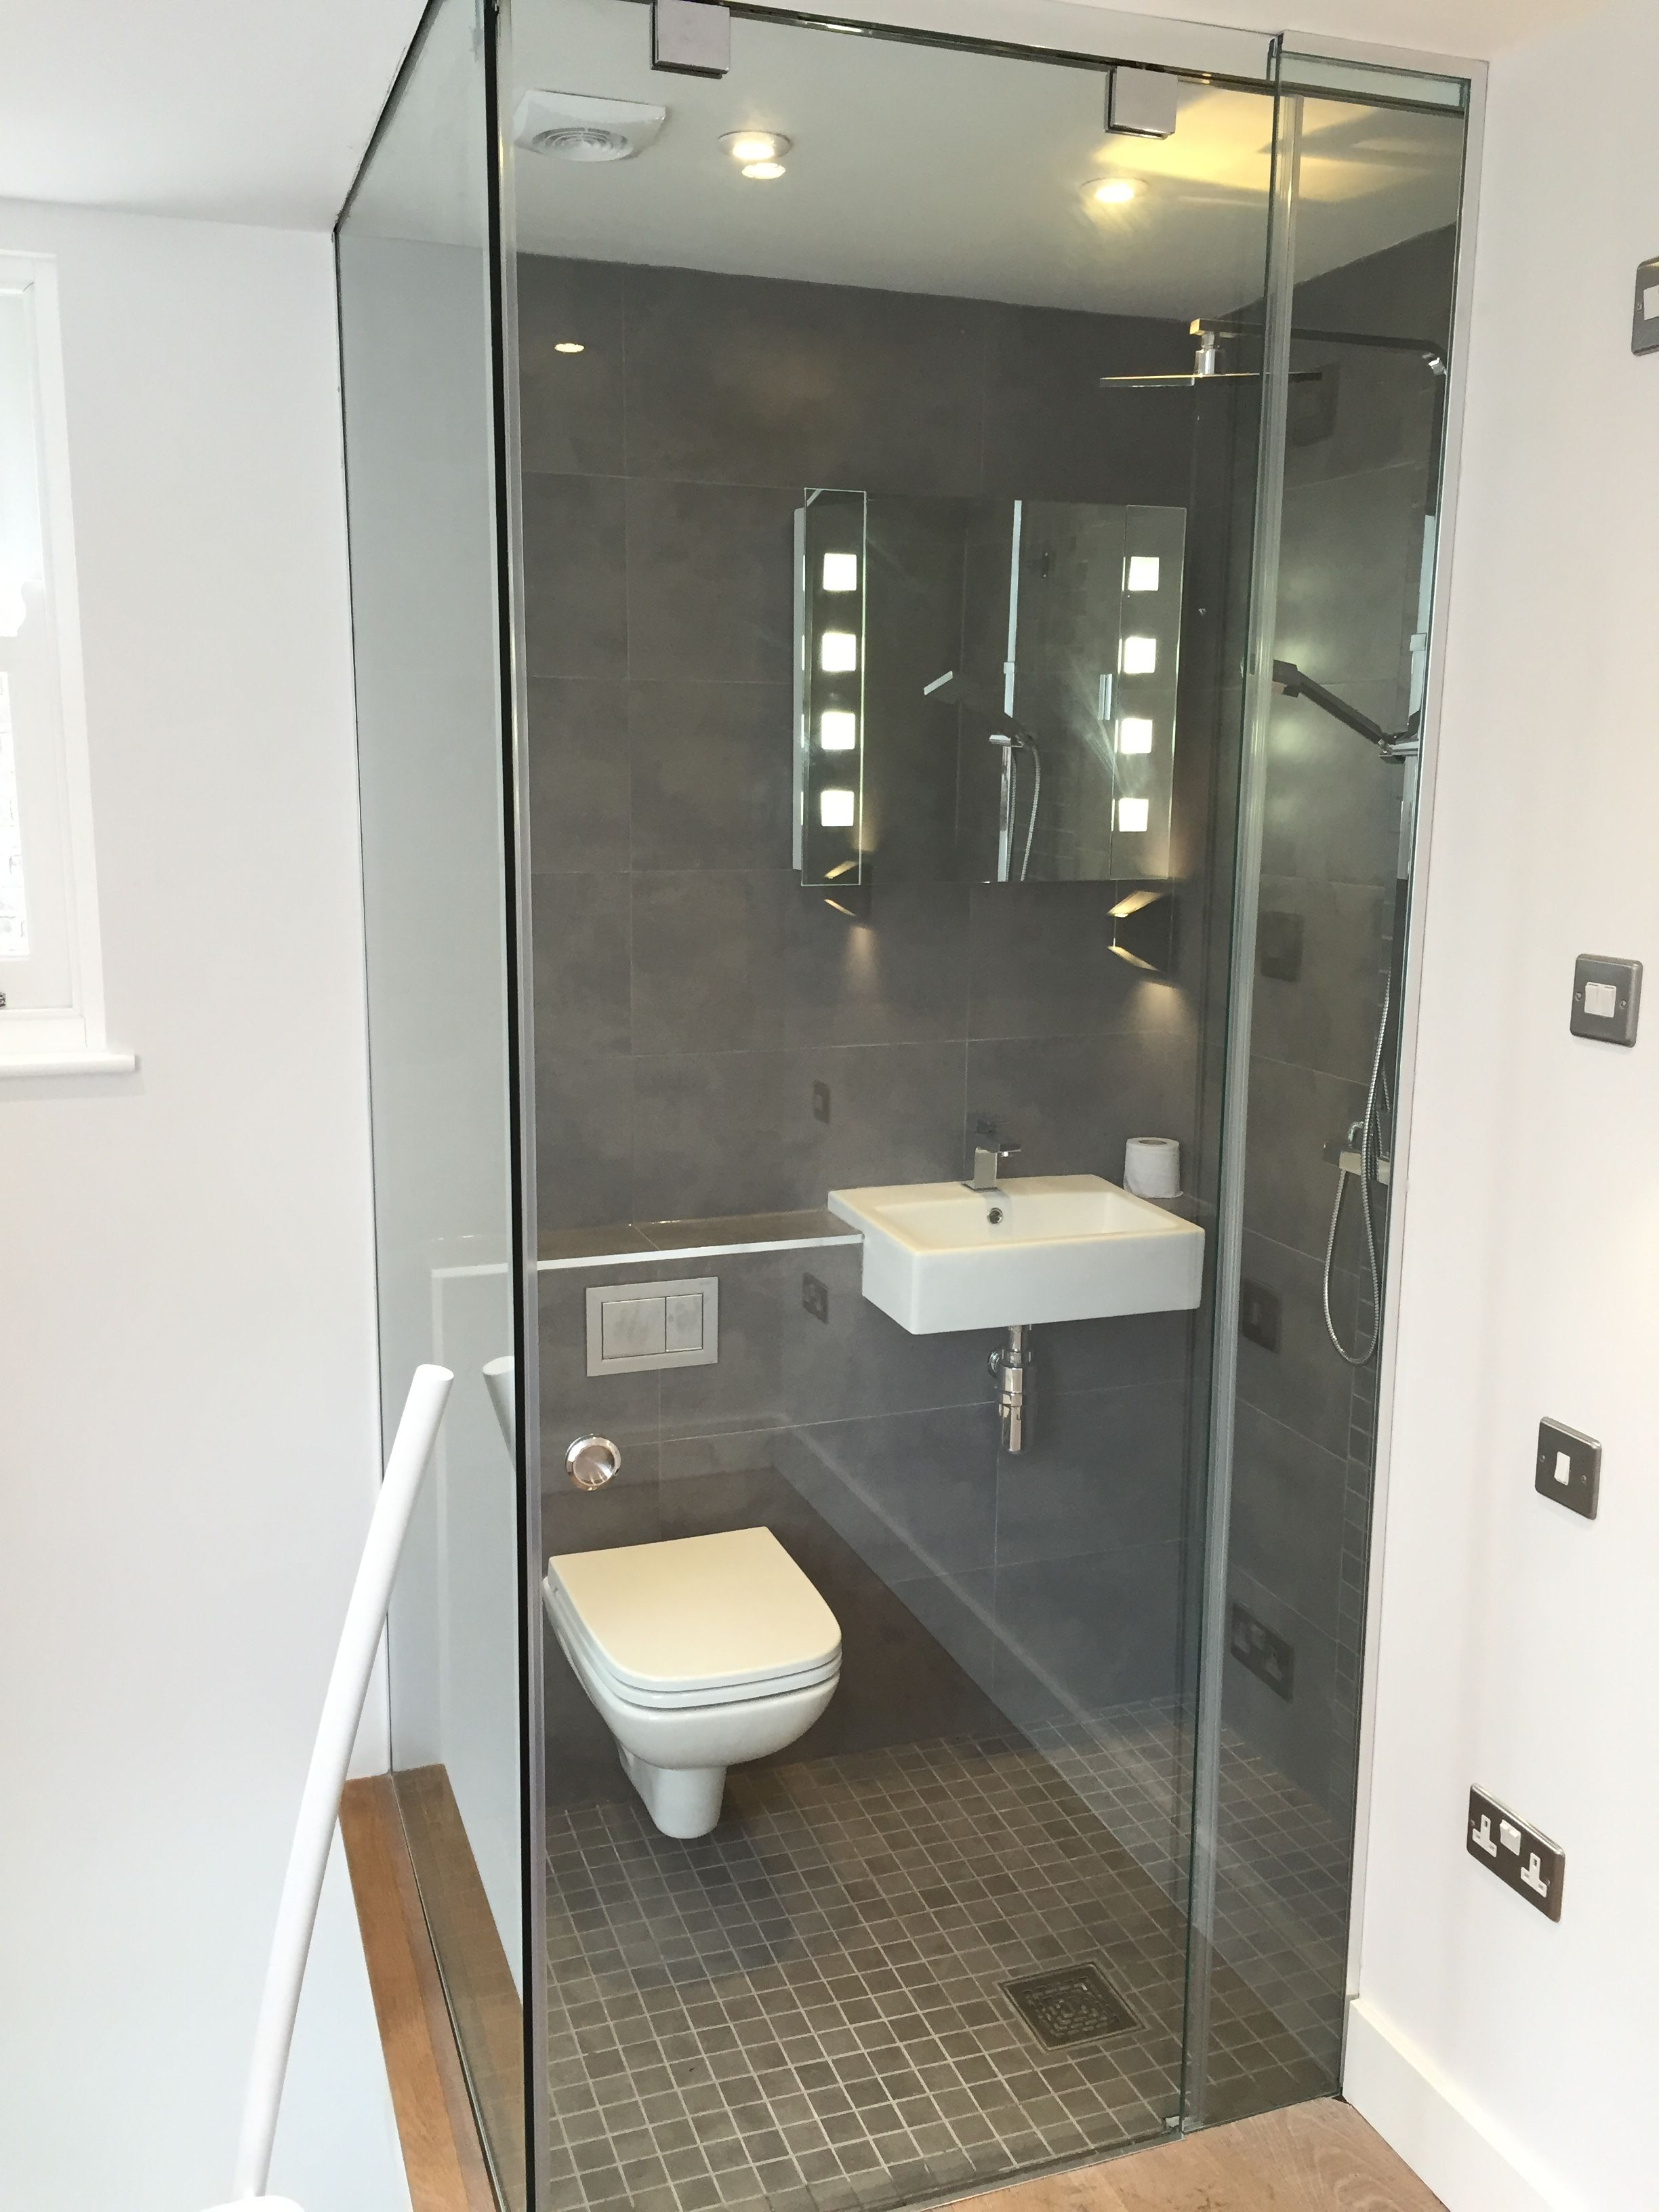 Frameless glass self contained bathroom in London studio ...